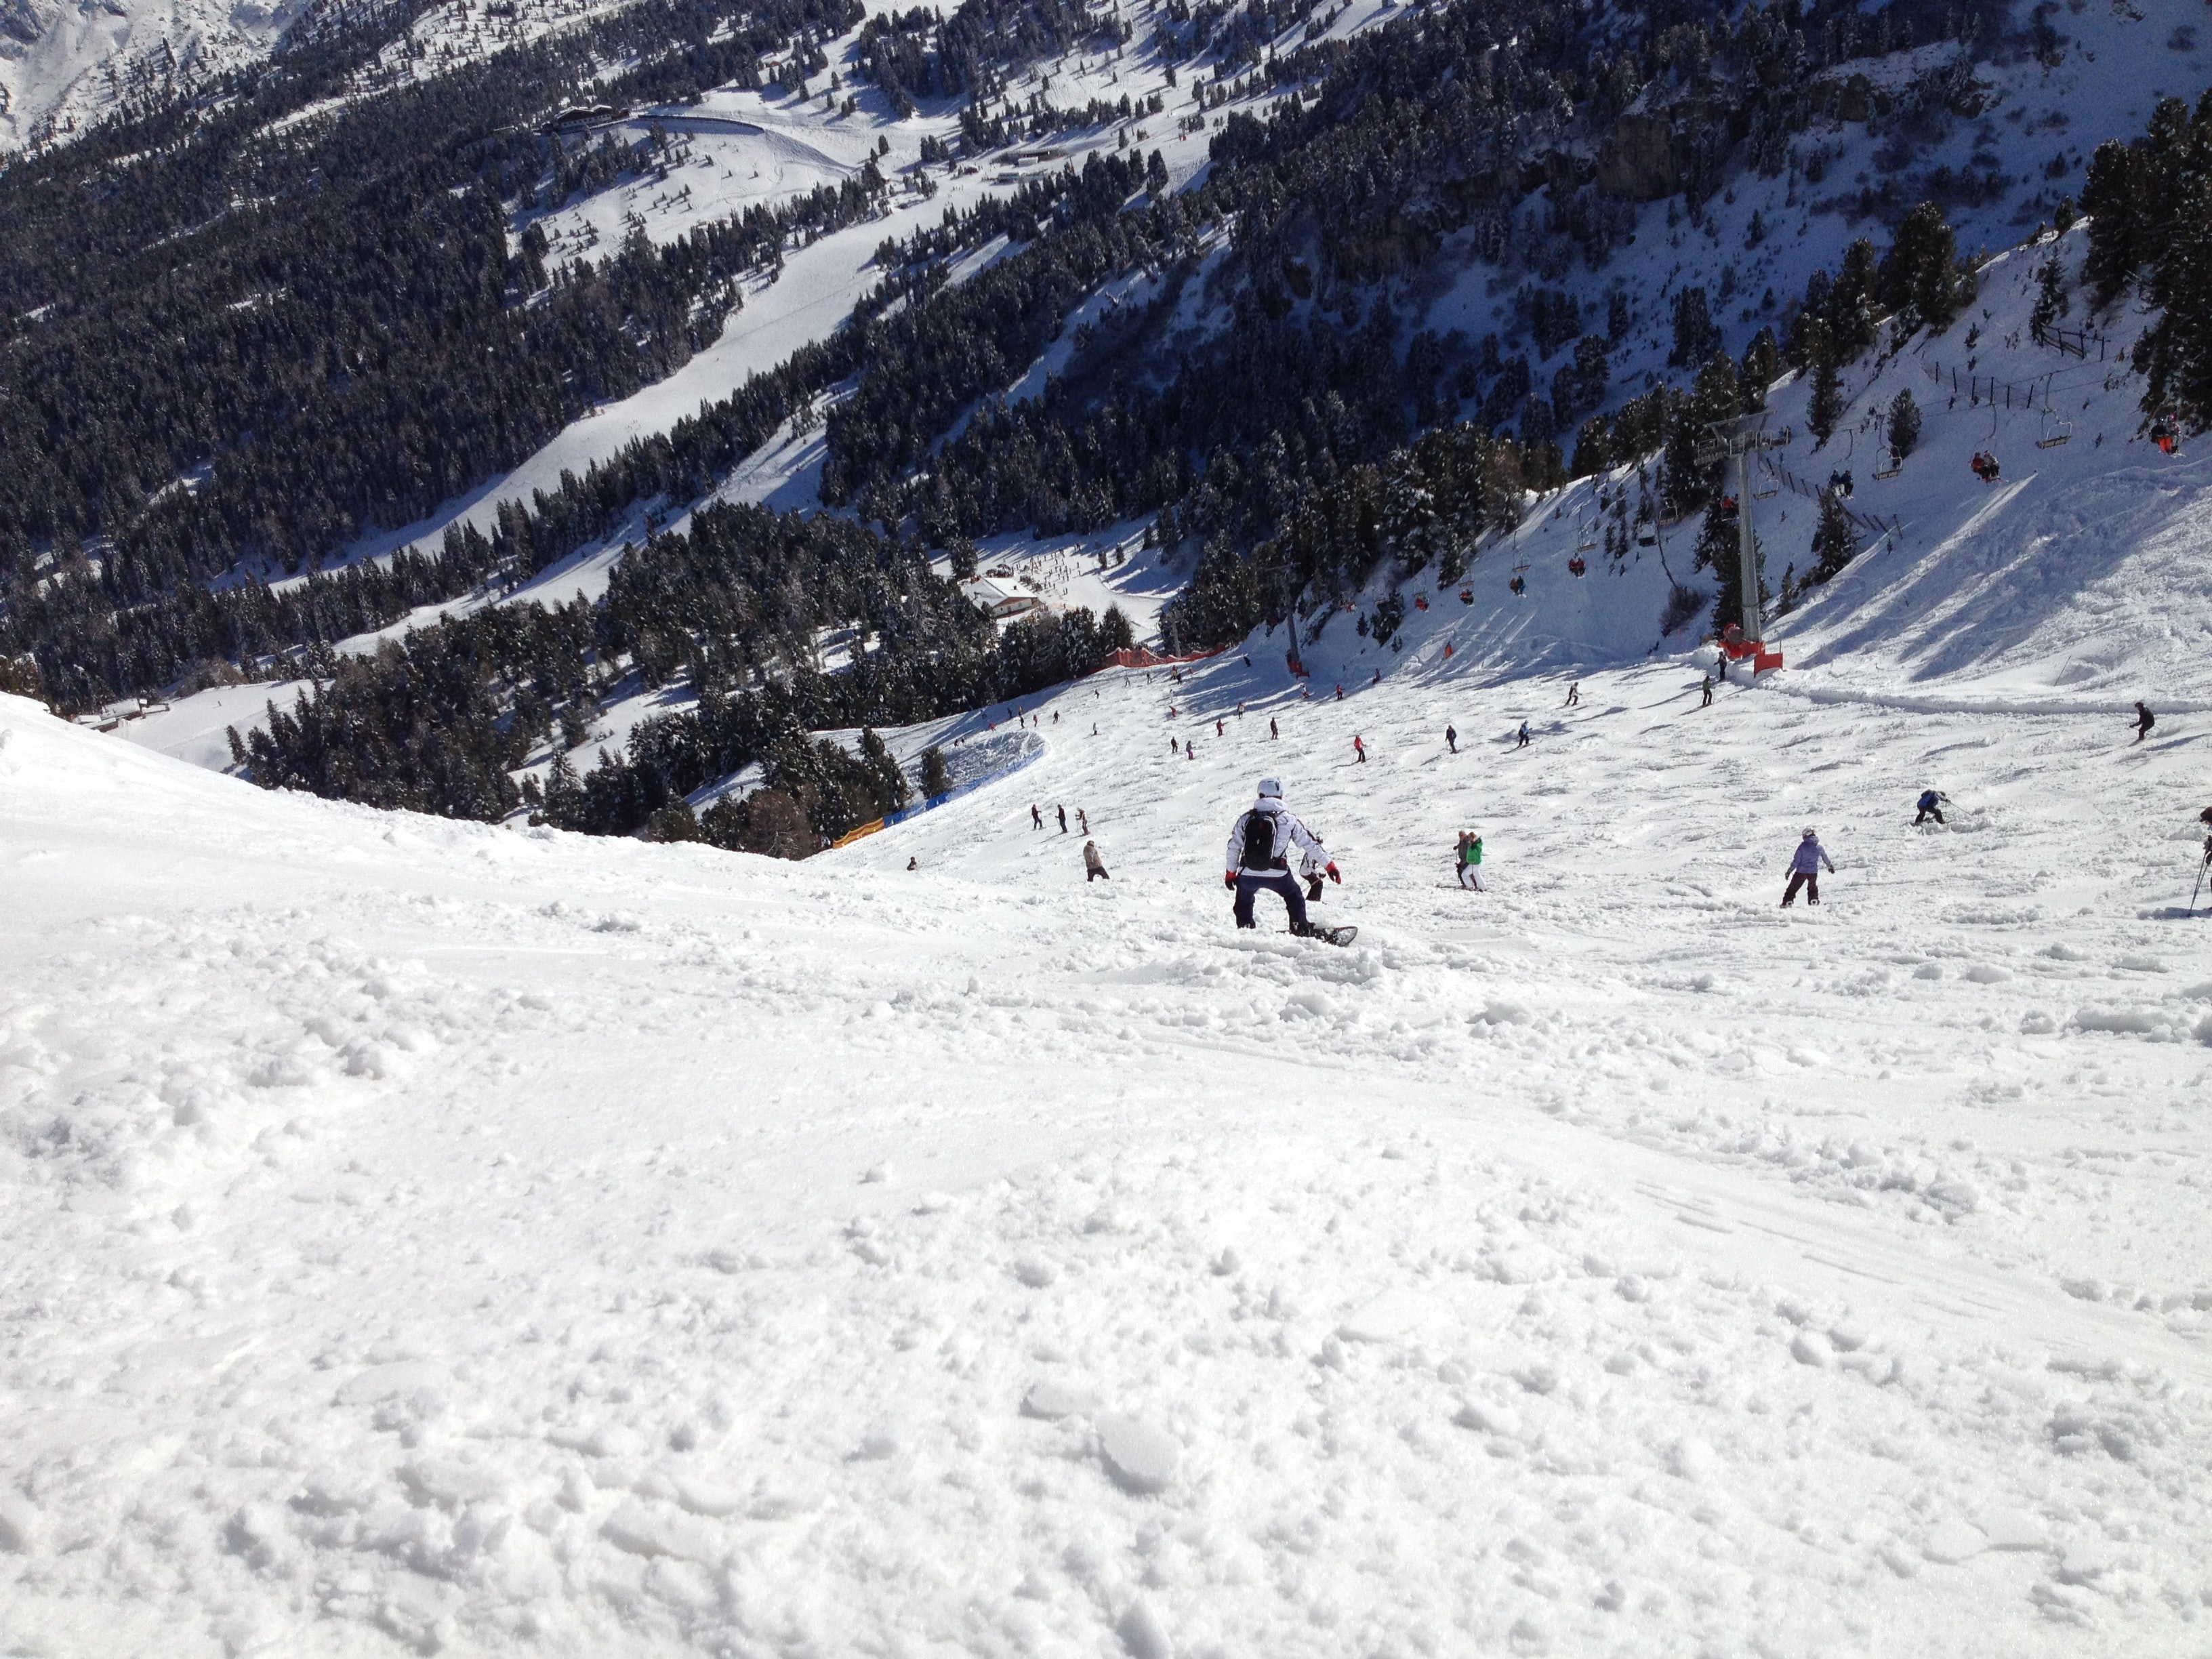 People on snow near in green trees photo